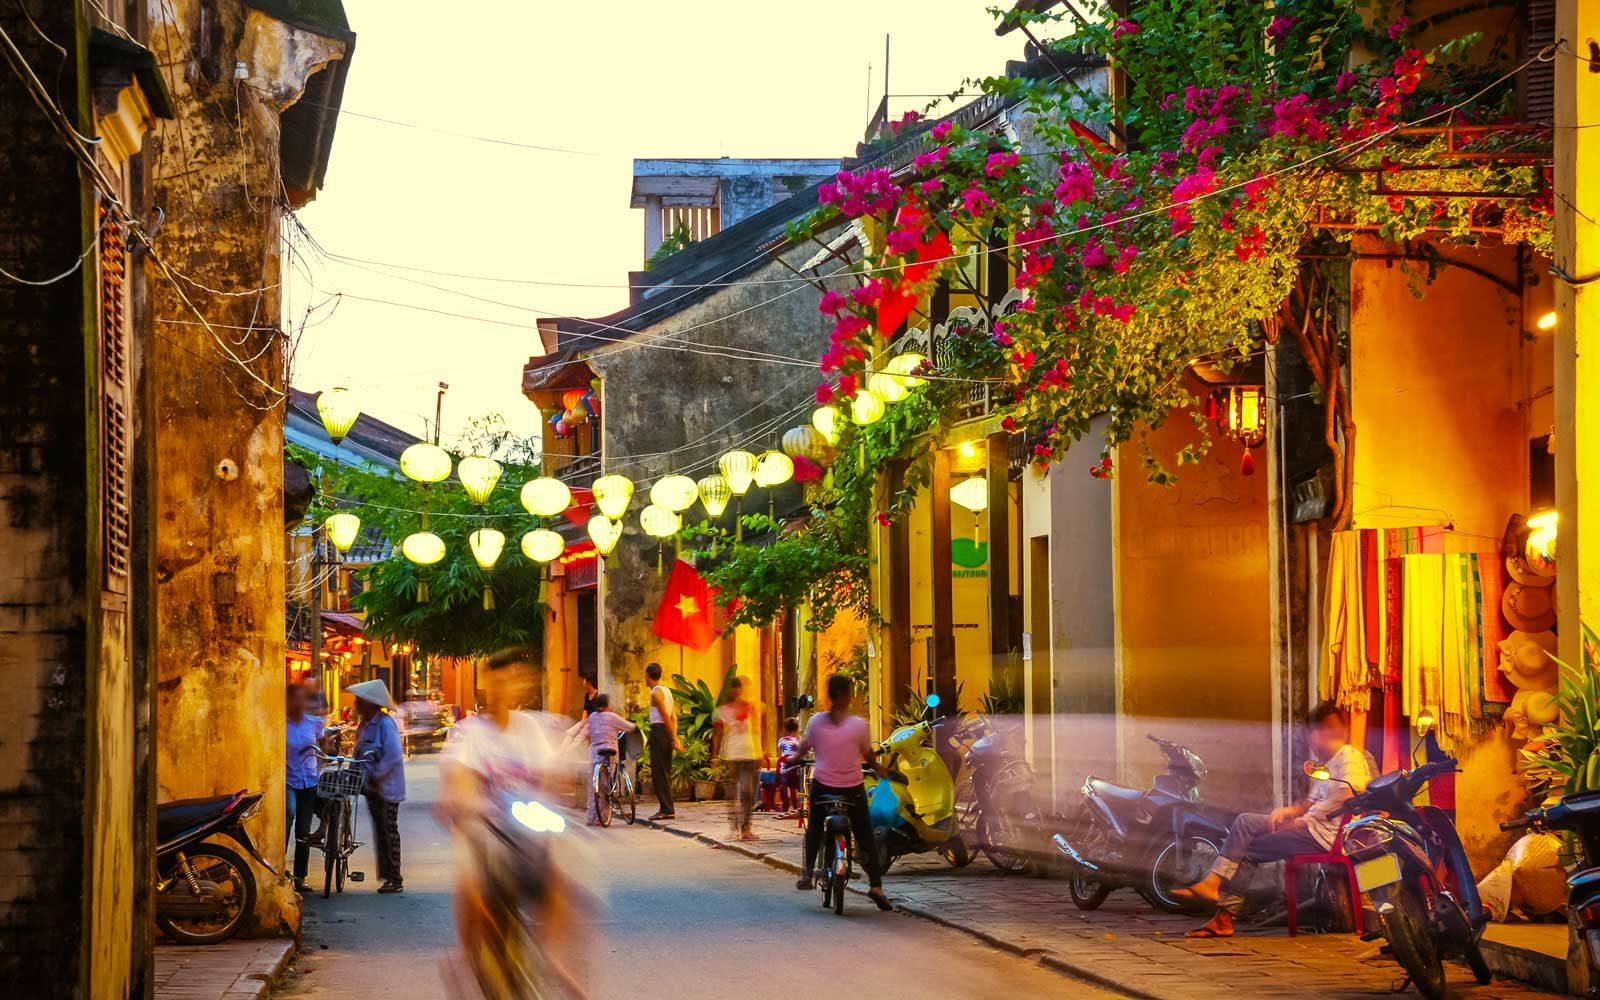 Streets of Hoi An, Vietnam at dusk